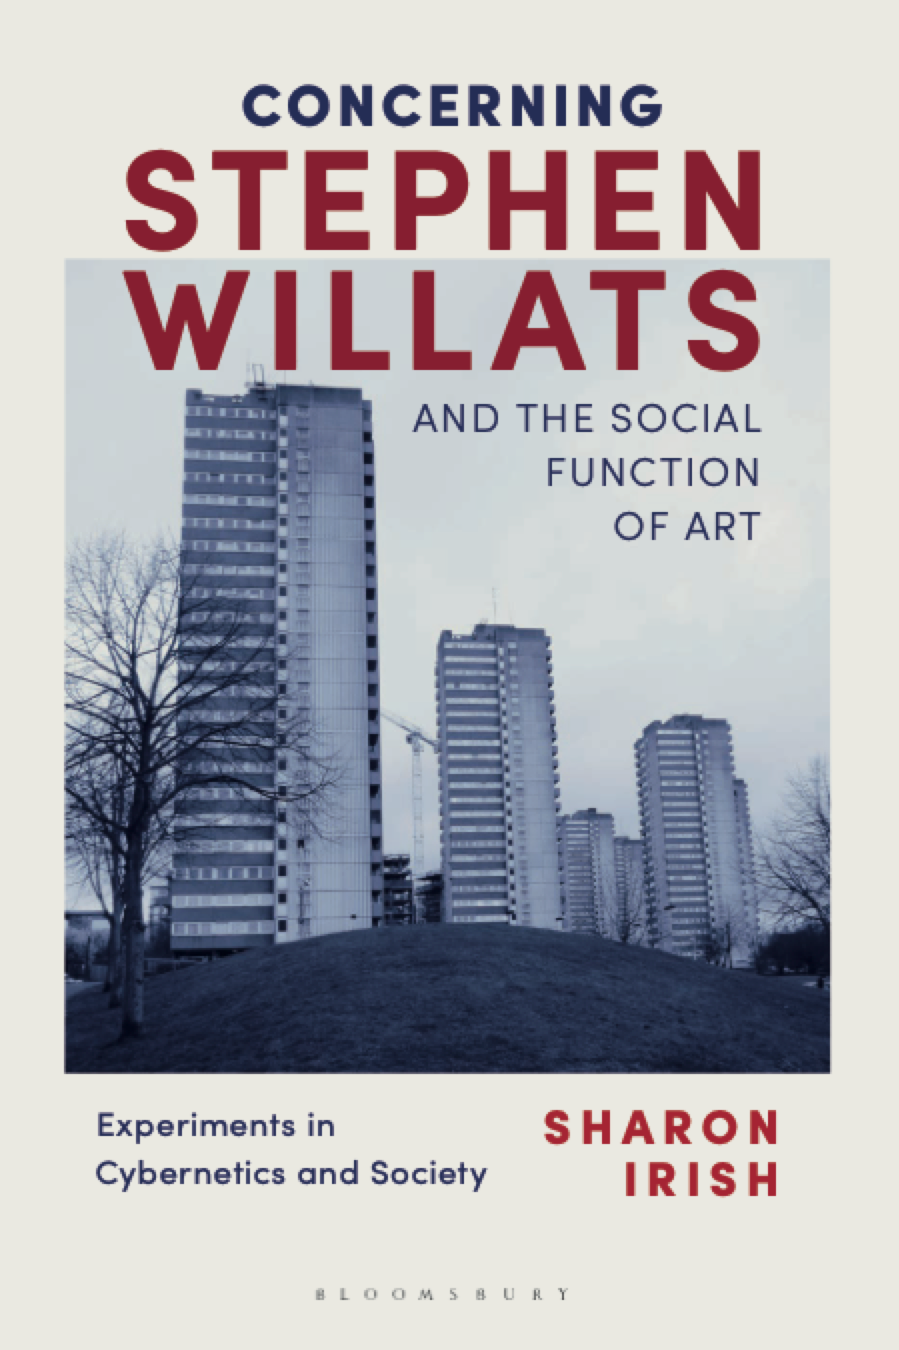 cover art for Concerning Stephen Willats and the Social Function of Art, a book by Sharon Irish. It shows a black and white photo of public housing high rises